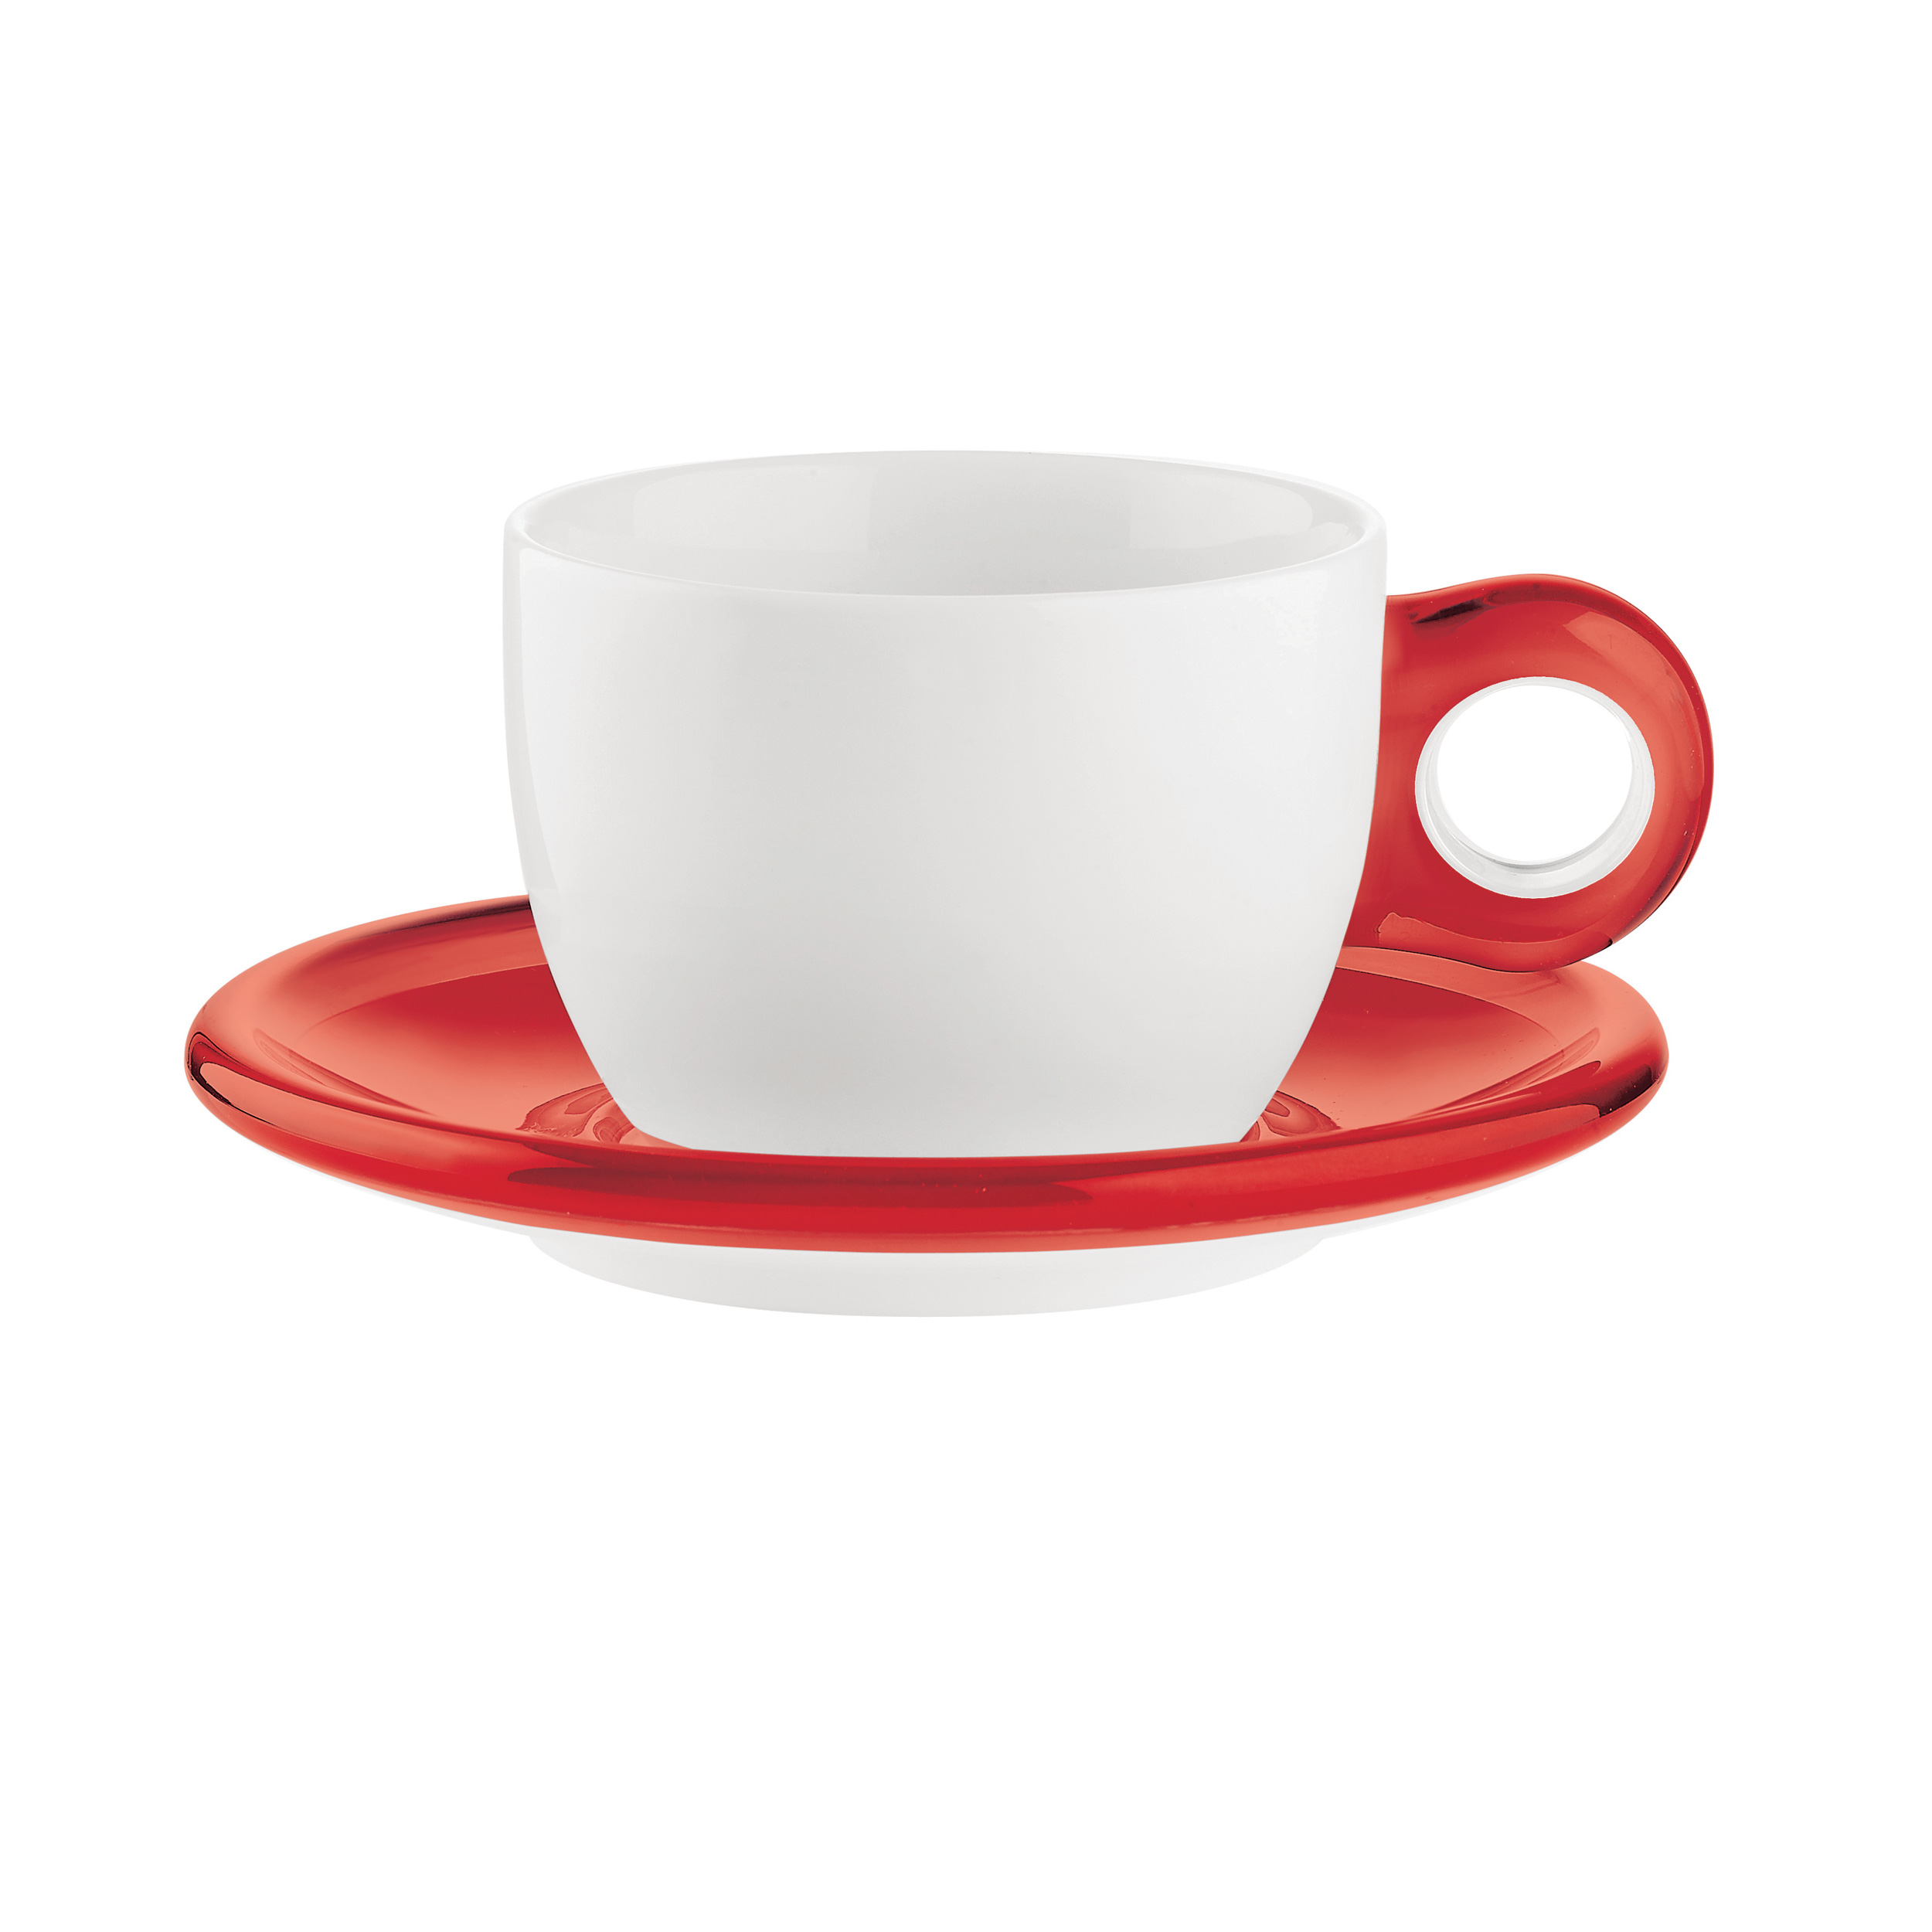 guzzini gocce cappuccino cups (set of )  dishwasher  microwave safe -